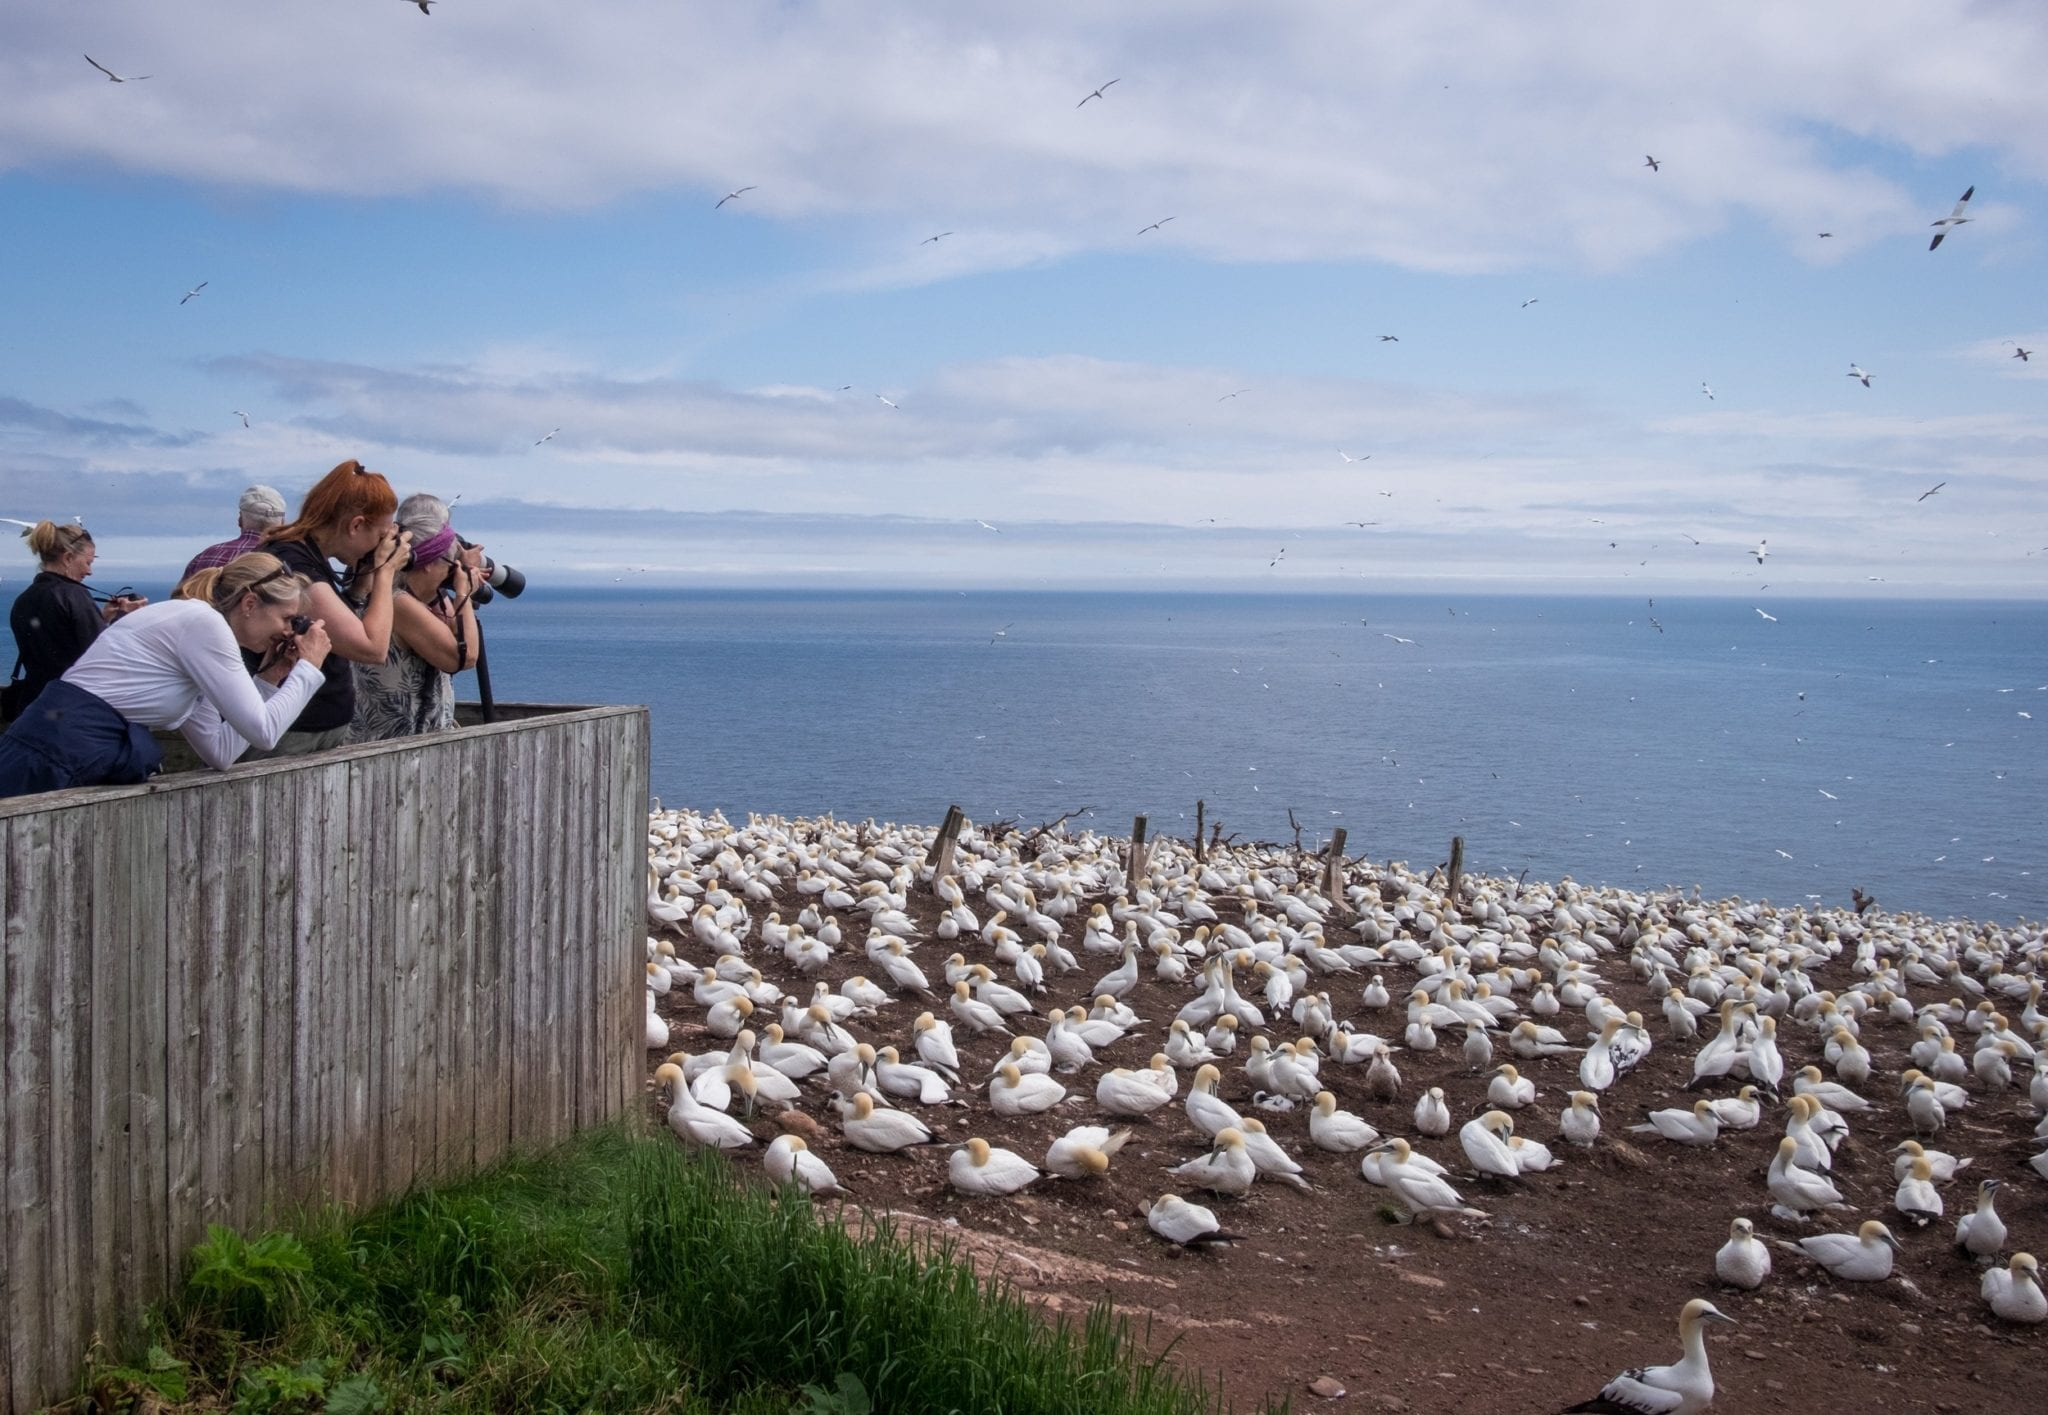 Several women lean over a platform and photograph thousands of white gannet birds in a colony on Bonaventure Island, Quebec.